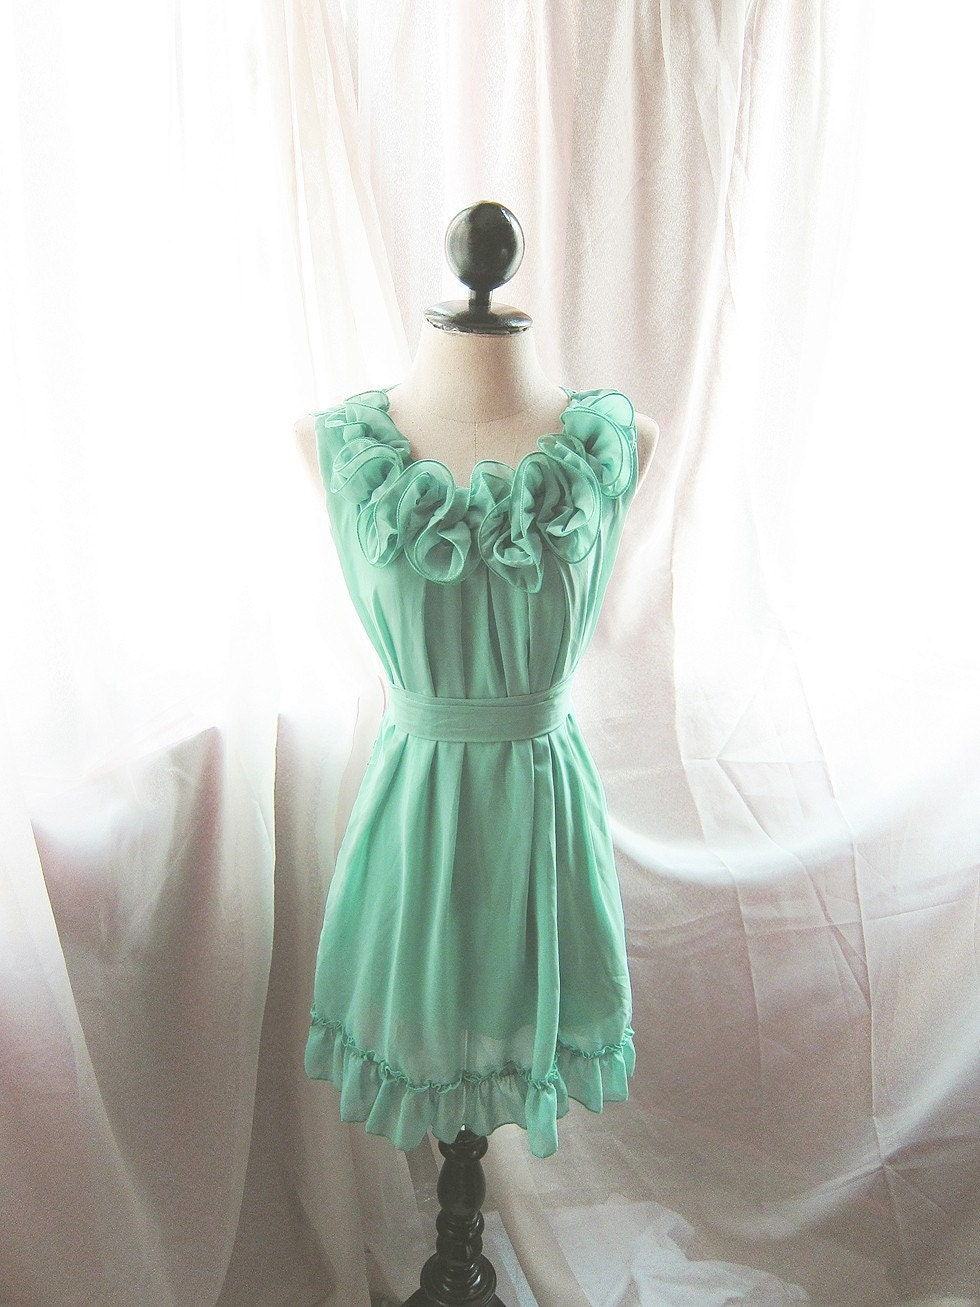 Minty Green Rose Rosette Bloom Secret Garden Alice in the Wonderland Tea Party Chiffon Ruffled Hem Dress